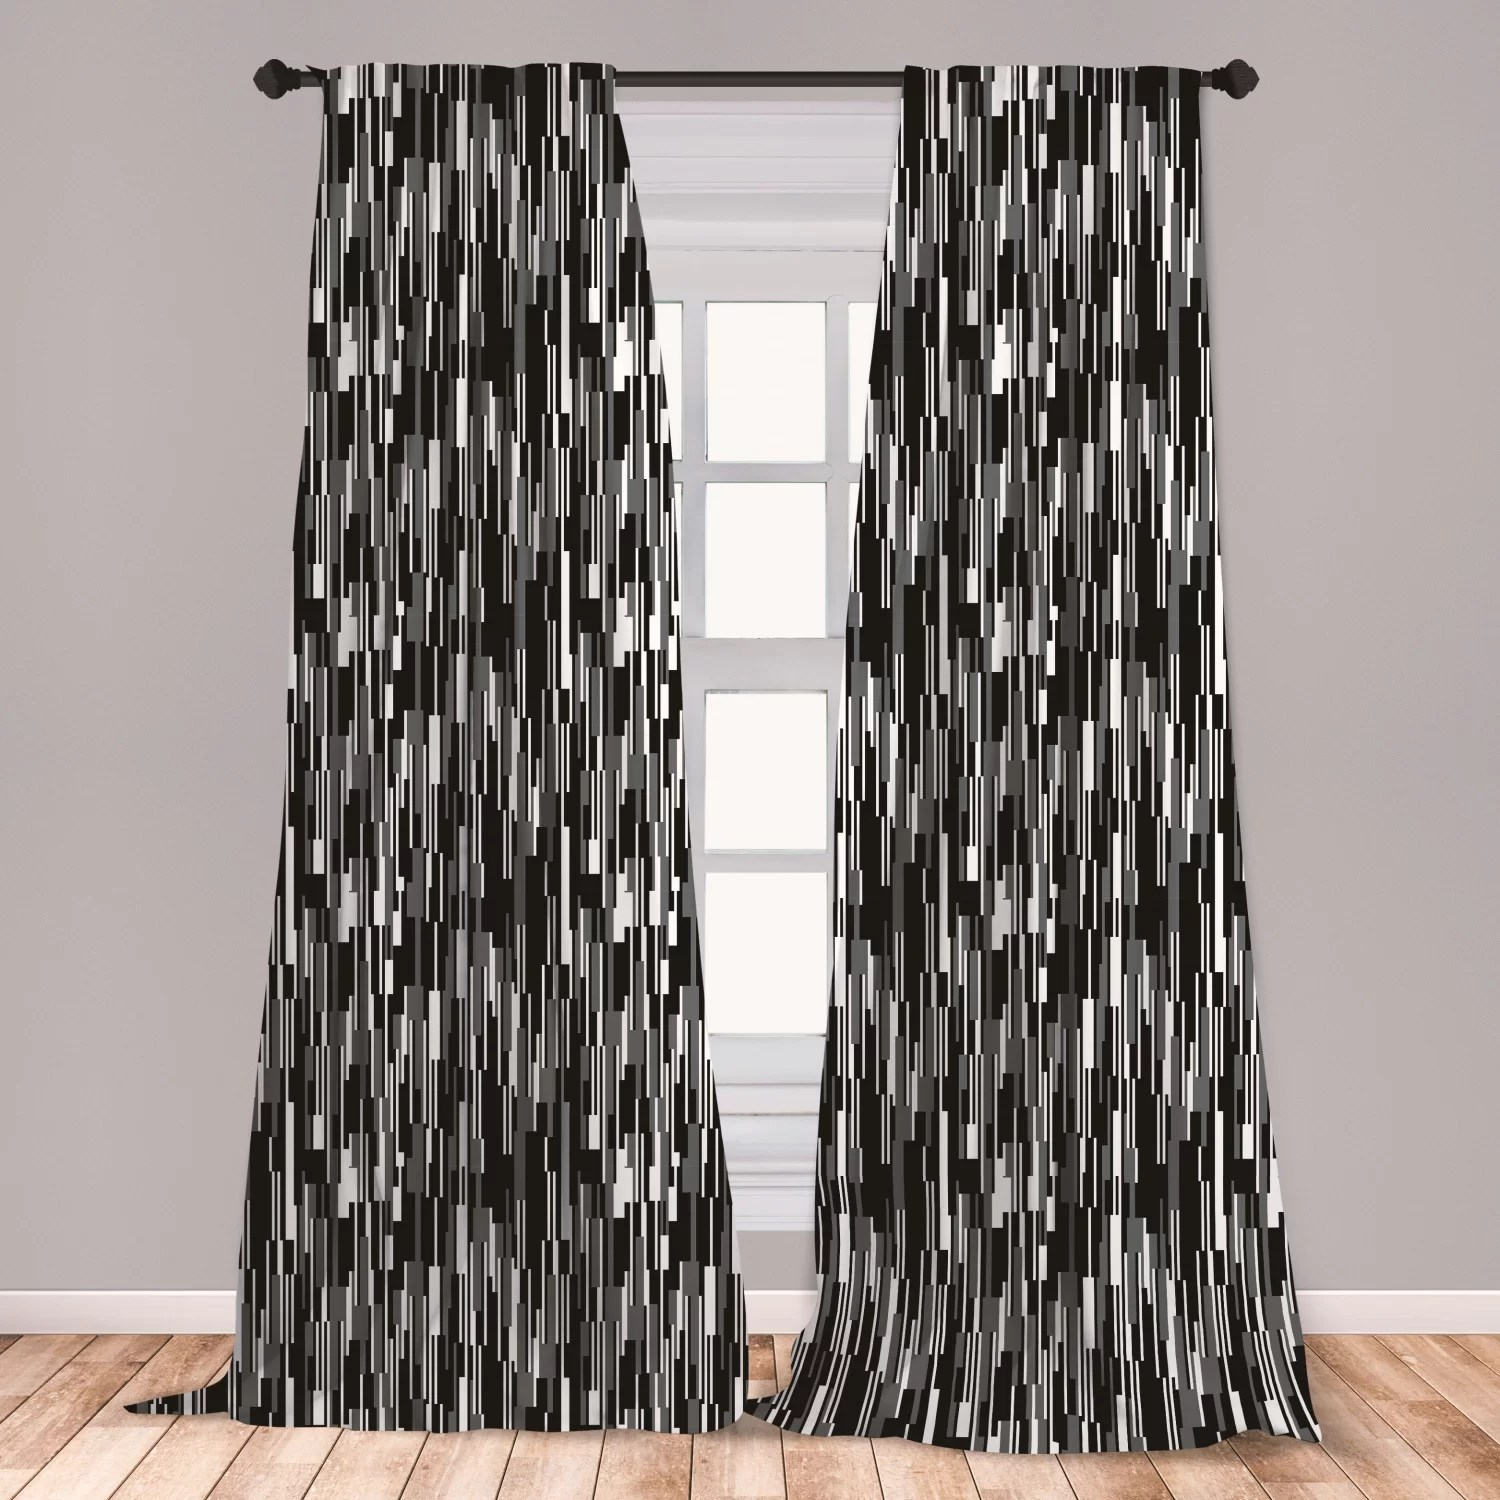 antora black and white window curtains barcode pattern abstraction vertical stripes in grayscale colors lightweight decorative panels set of 2 with